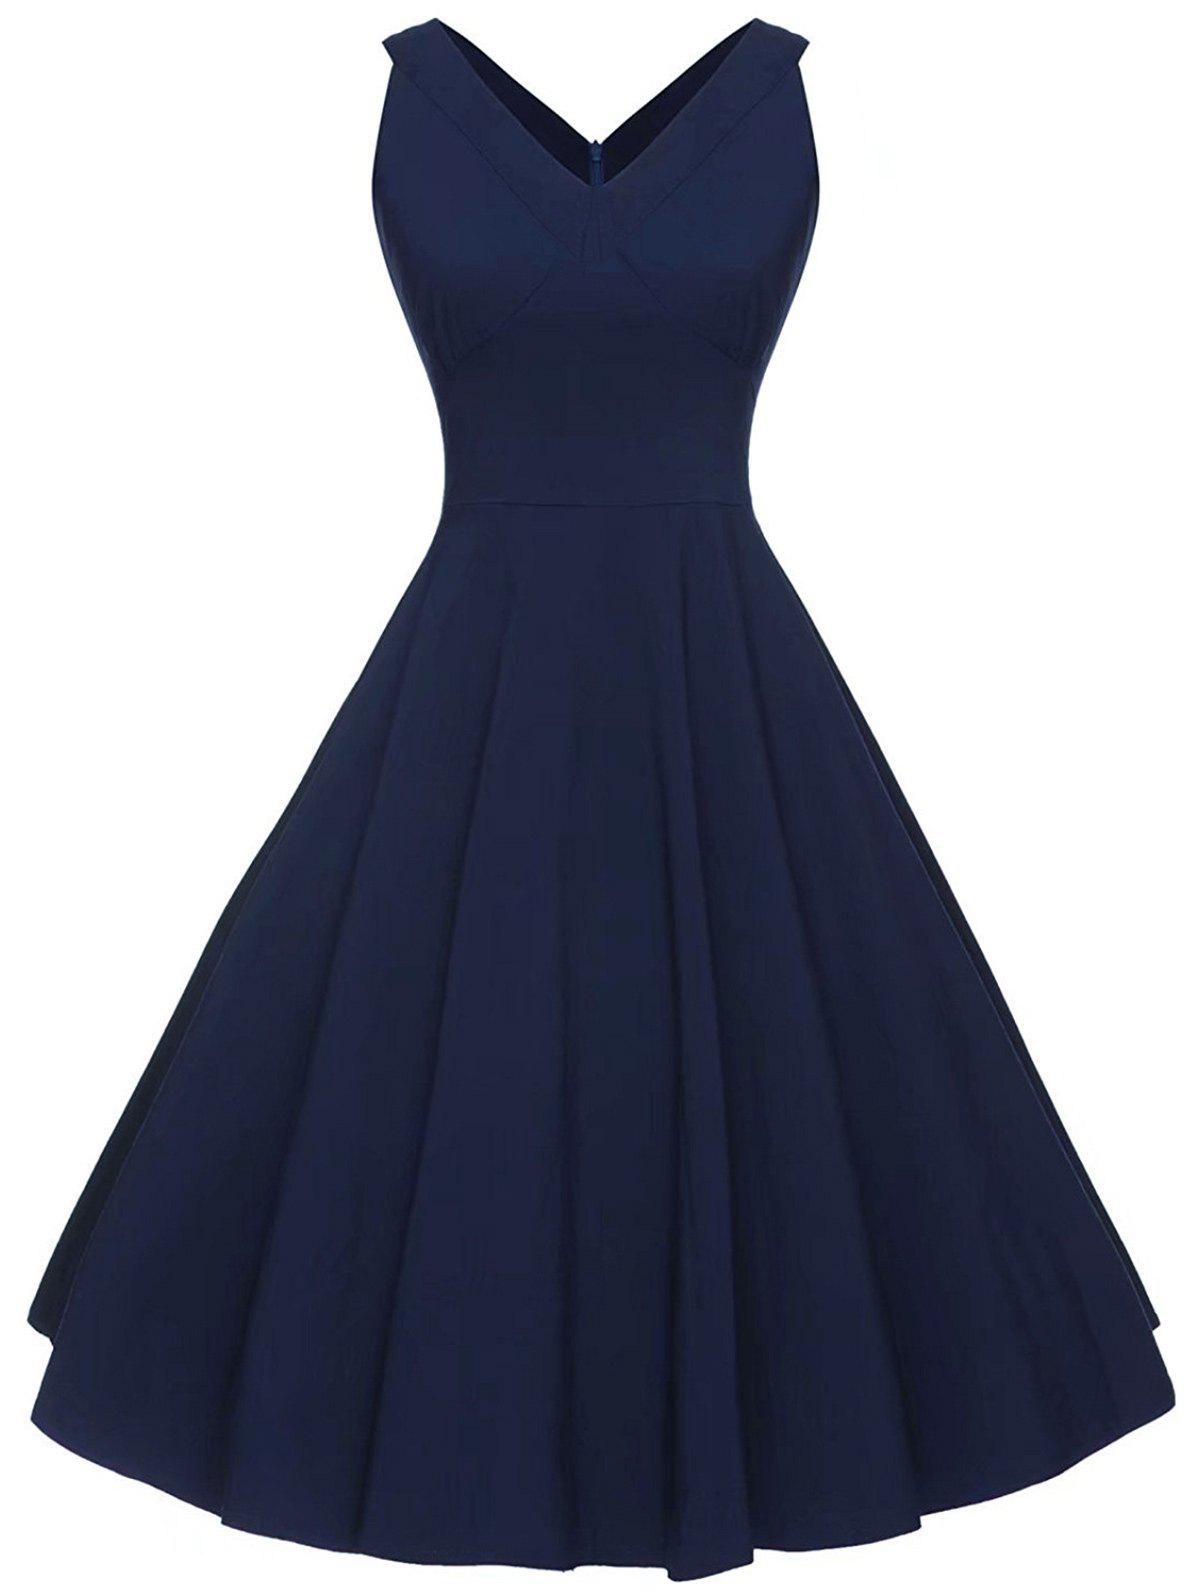 Vintage V-neck Sleeveless DressWOMEN<br><br>Size: 2XL; Color: PURPLISH BLUE; Style: Vintage; Material: Cotton,Polyester; Silhouette: A-Line; Dress Type: Fit and Flare Dress; Dresses Length: Mid-Calf; Neckline: V-Neck; Sleeve Length: Sleeveless; Pattern Type: Solid Color; With Belt: No; Season: Summer; Weight: 0.4000kg; Package Contents: 1 x Dress;